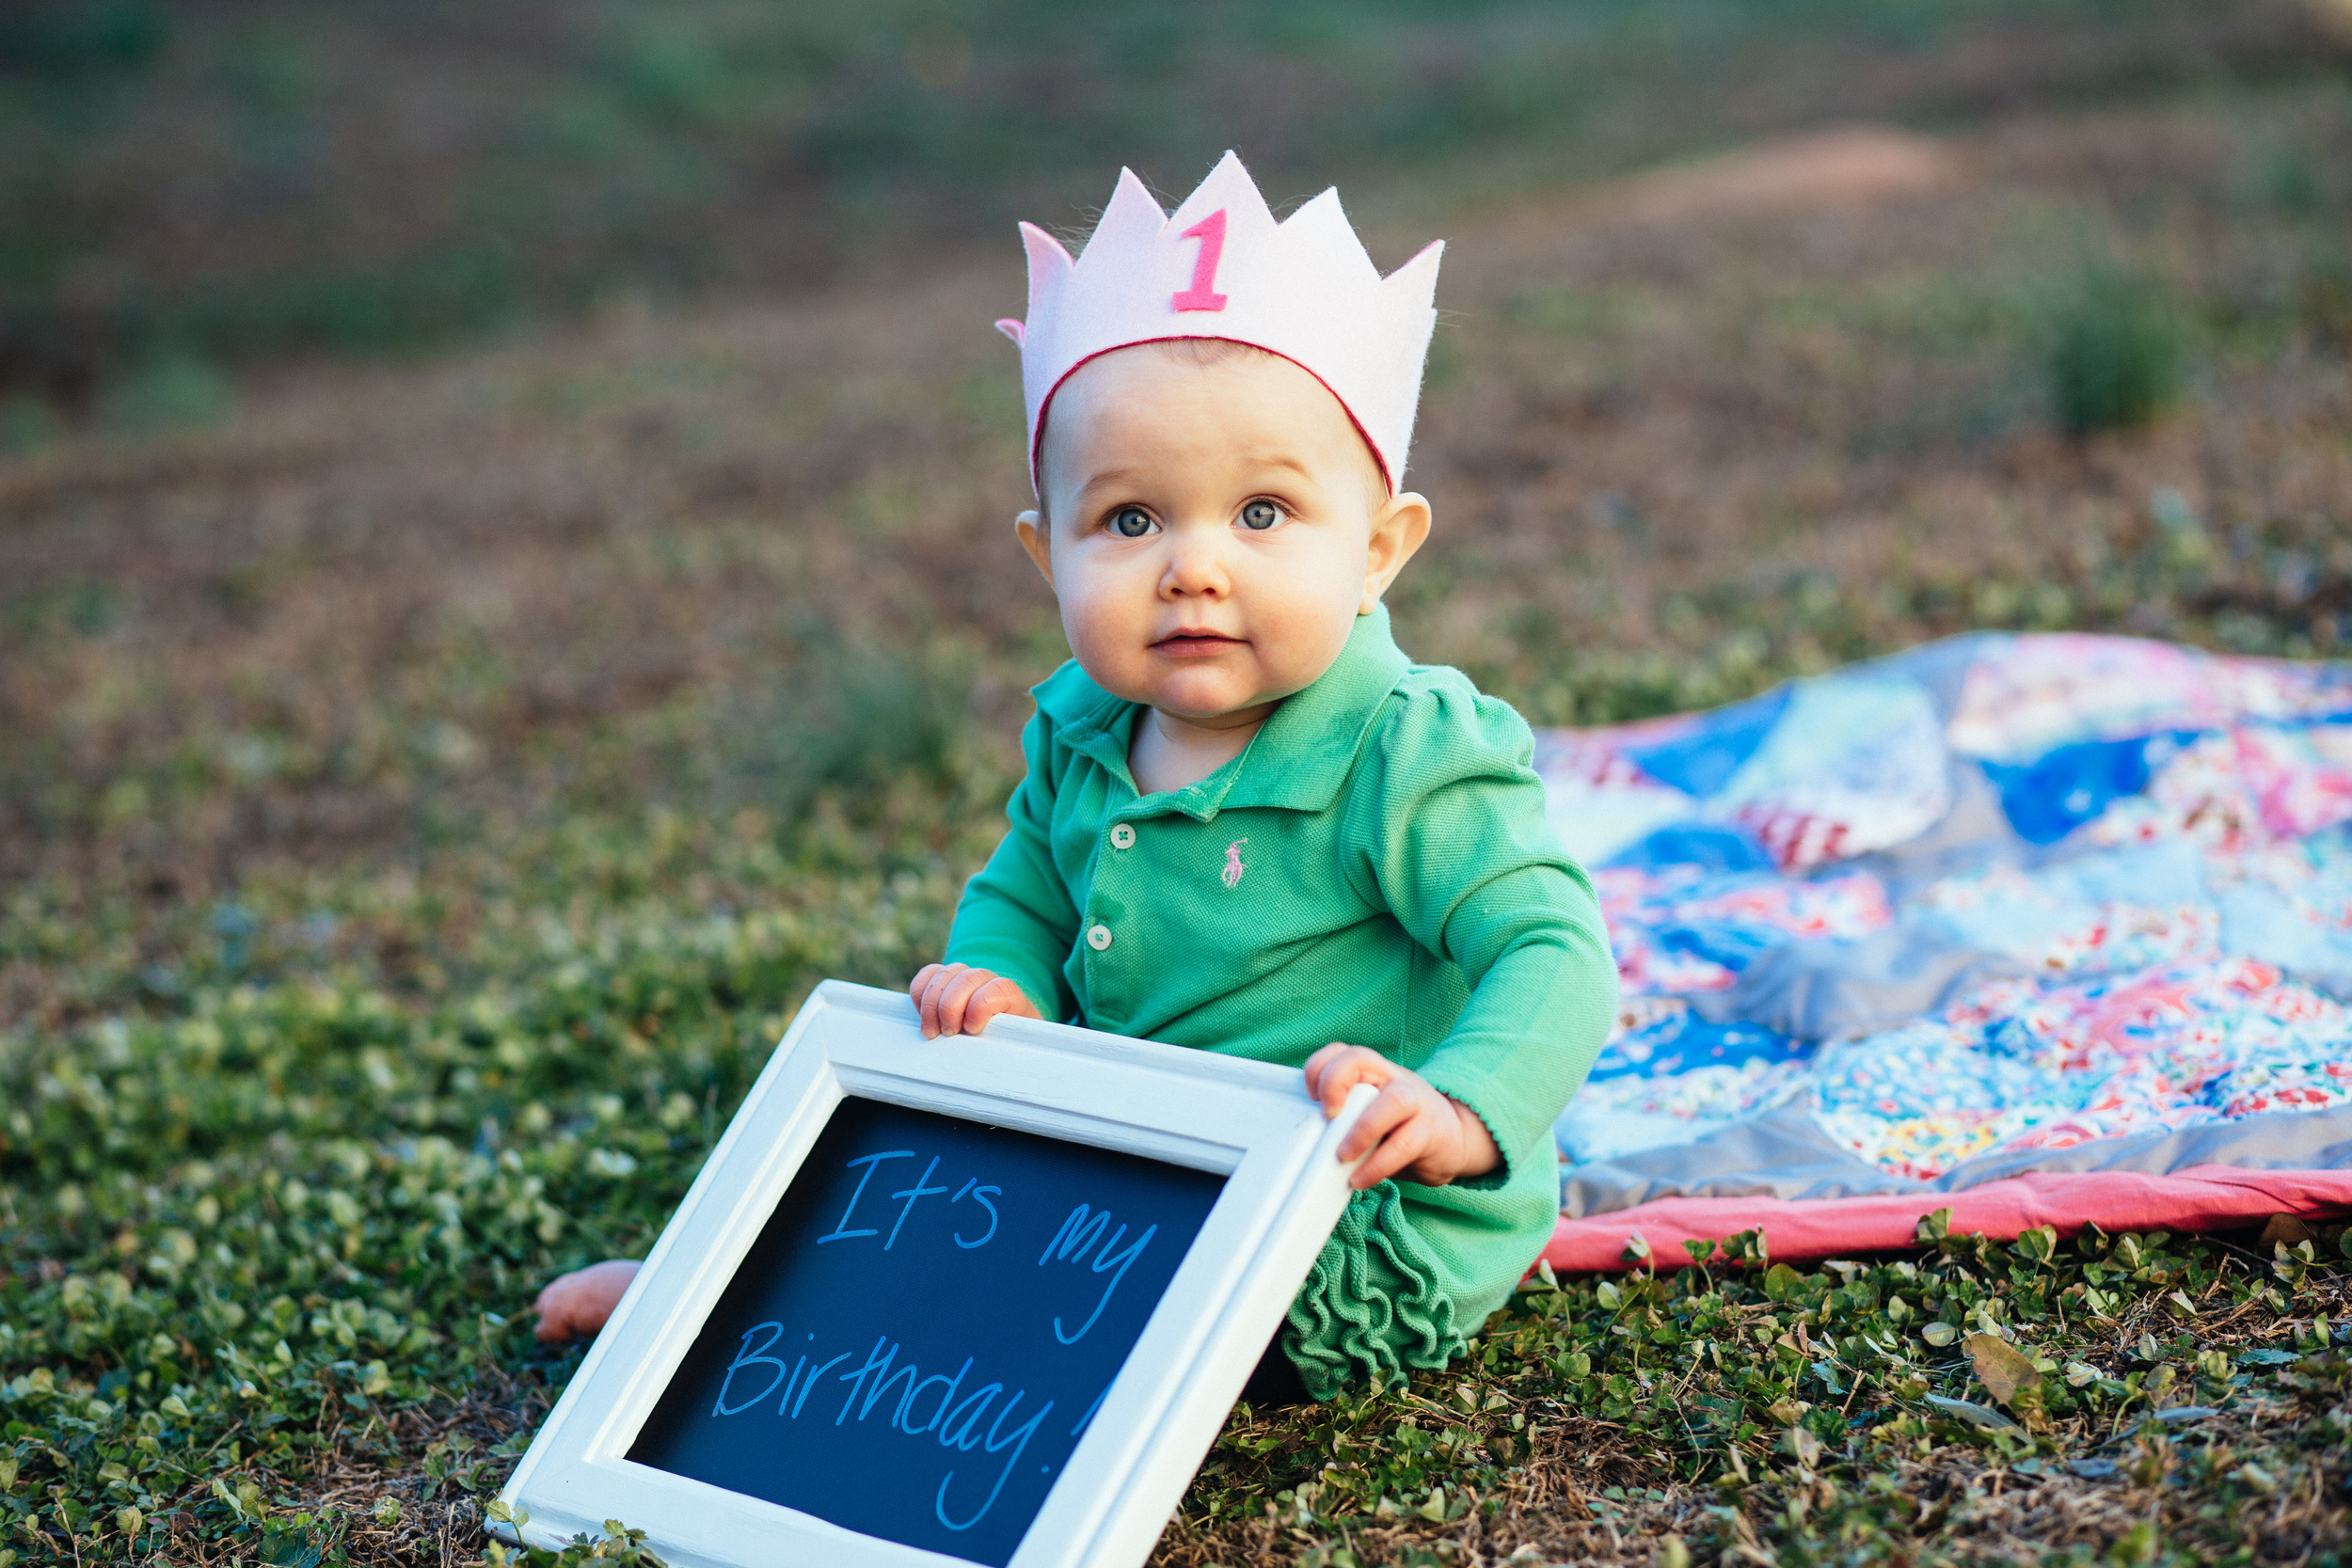 emery first birthday-32.jpg